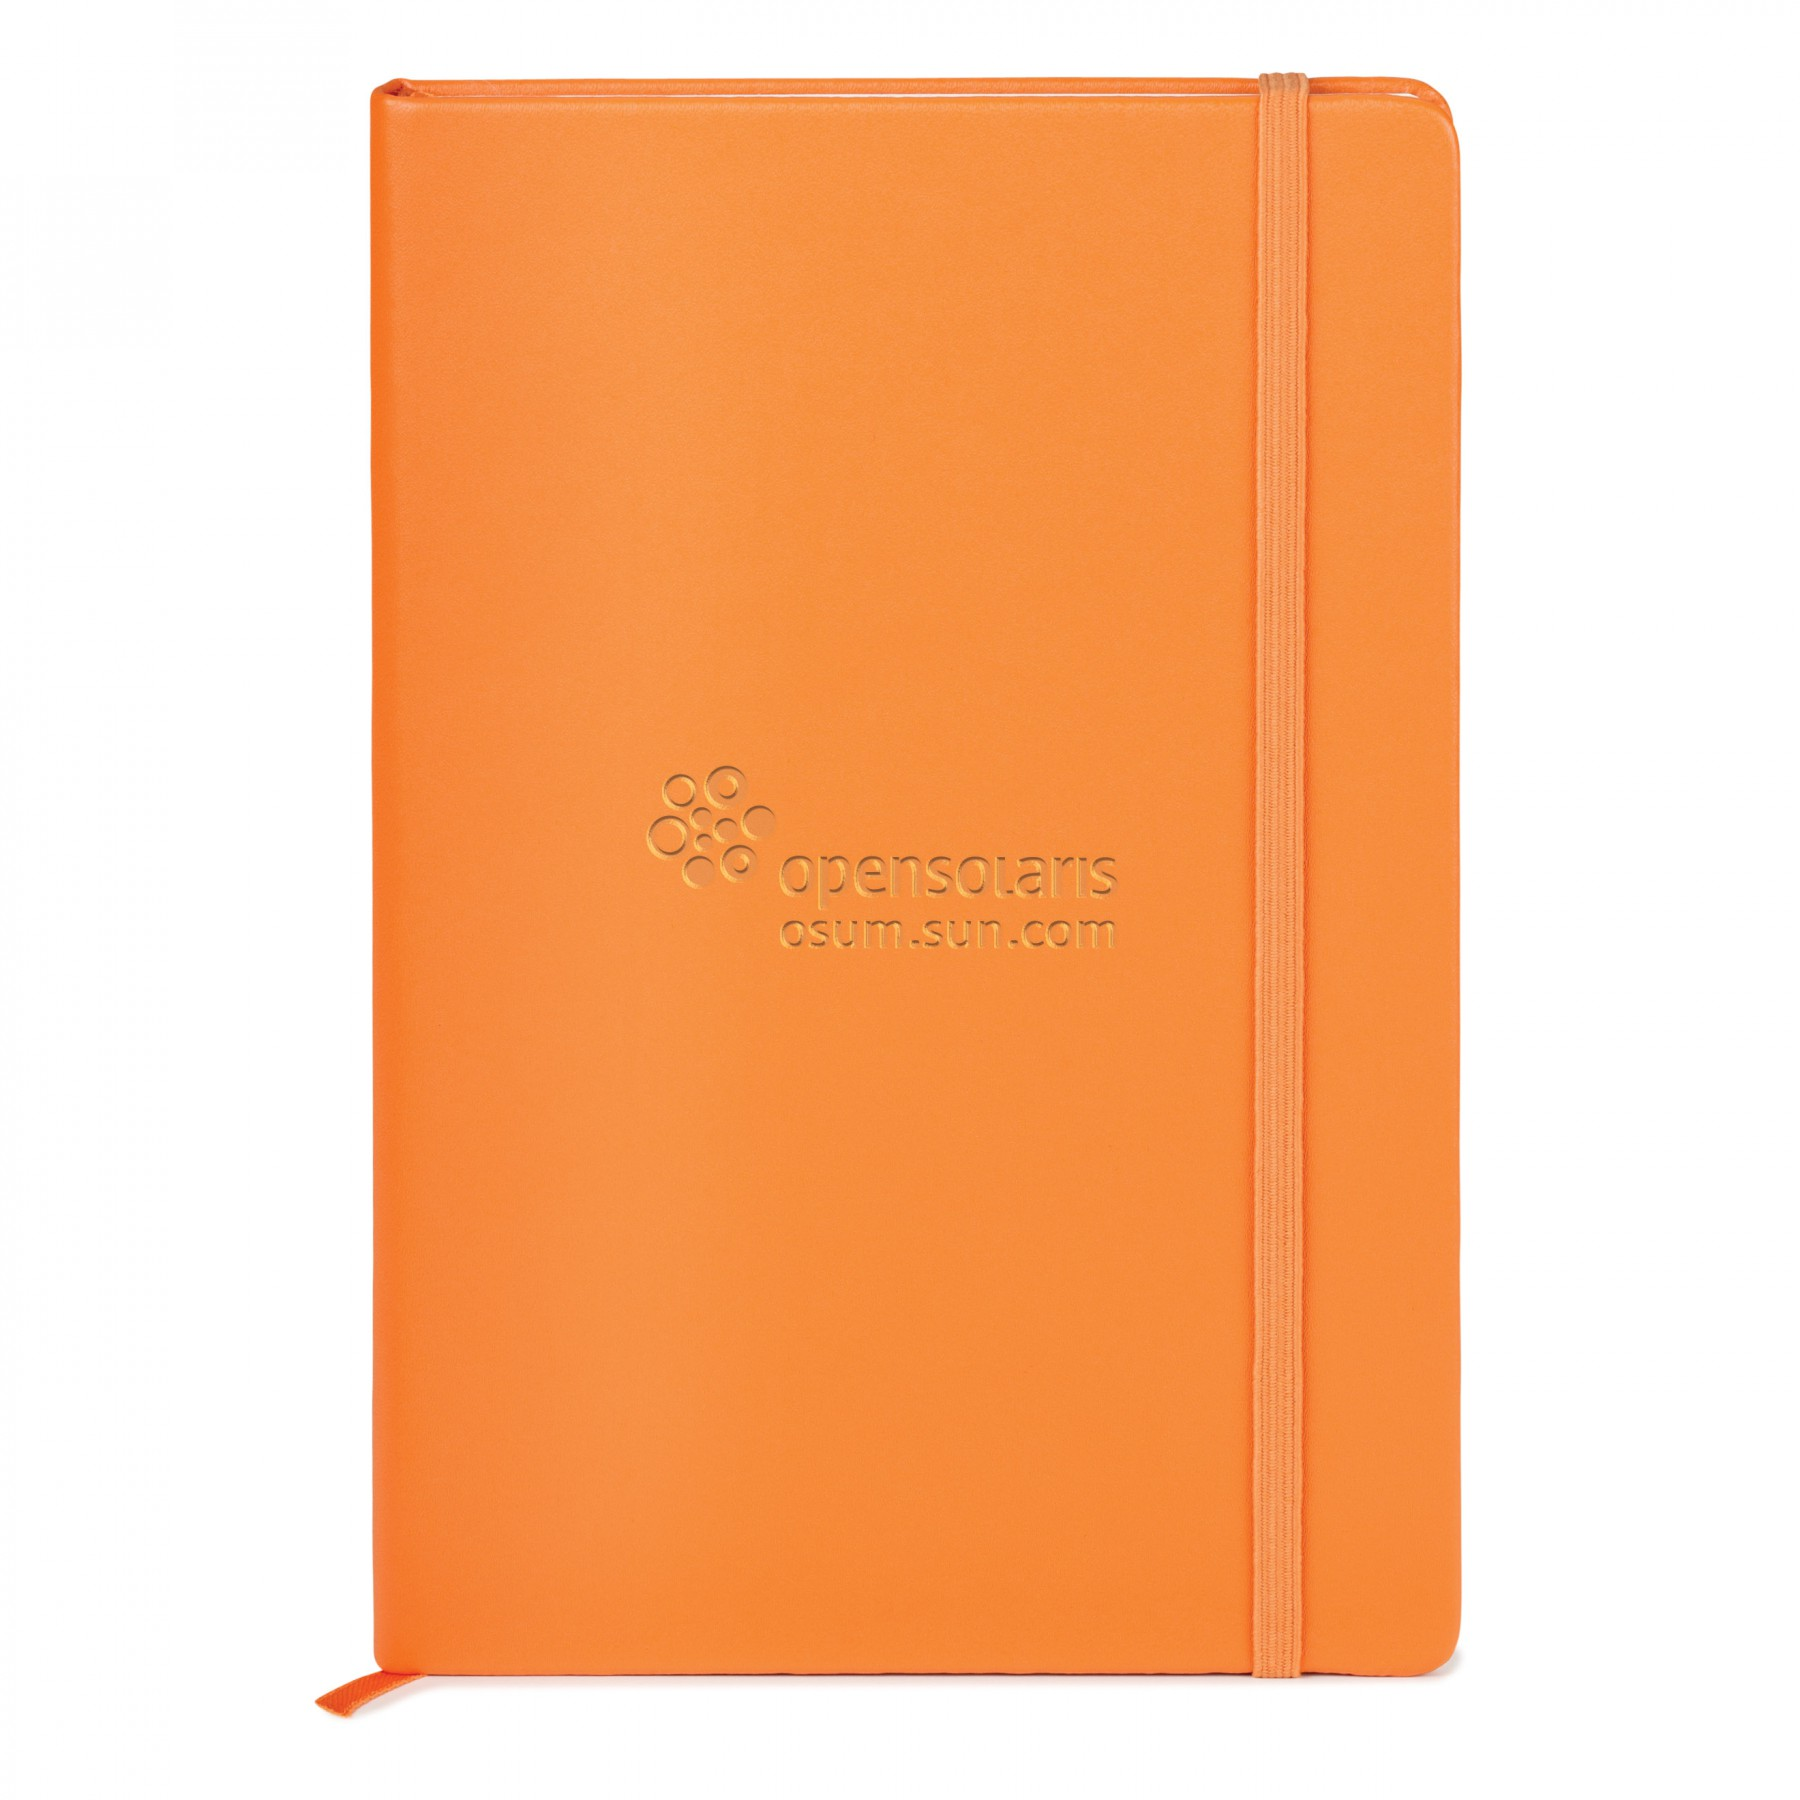 NEOSKIN HARD COVER JOURNAL - Debossed Imprint (ST4143)